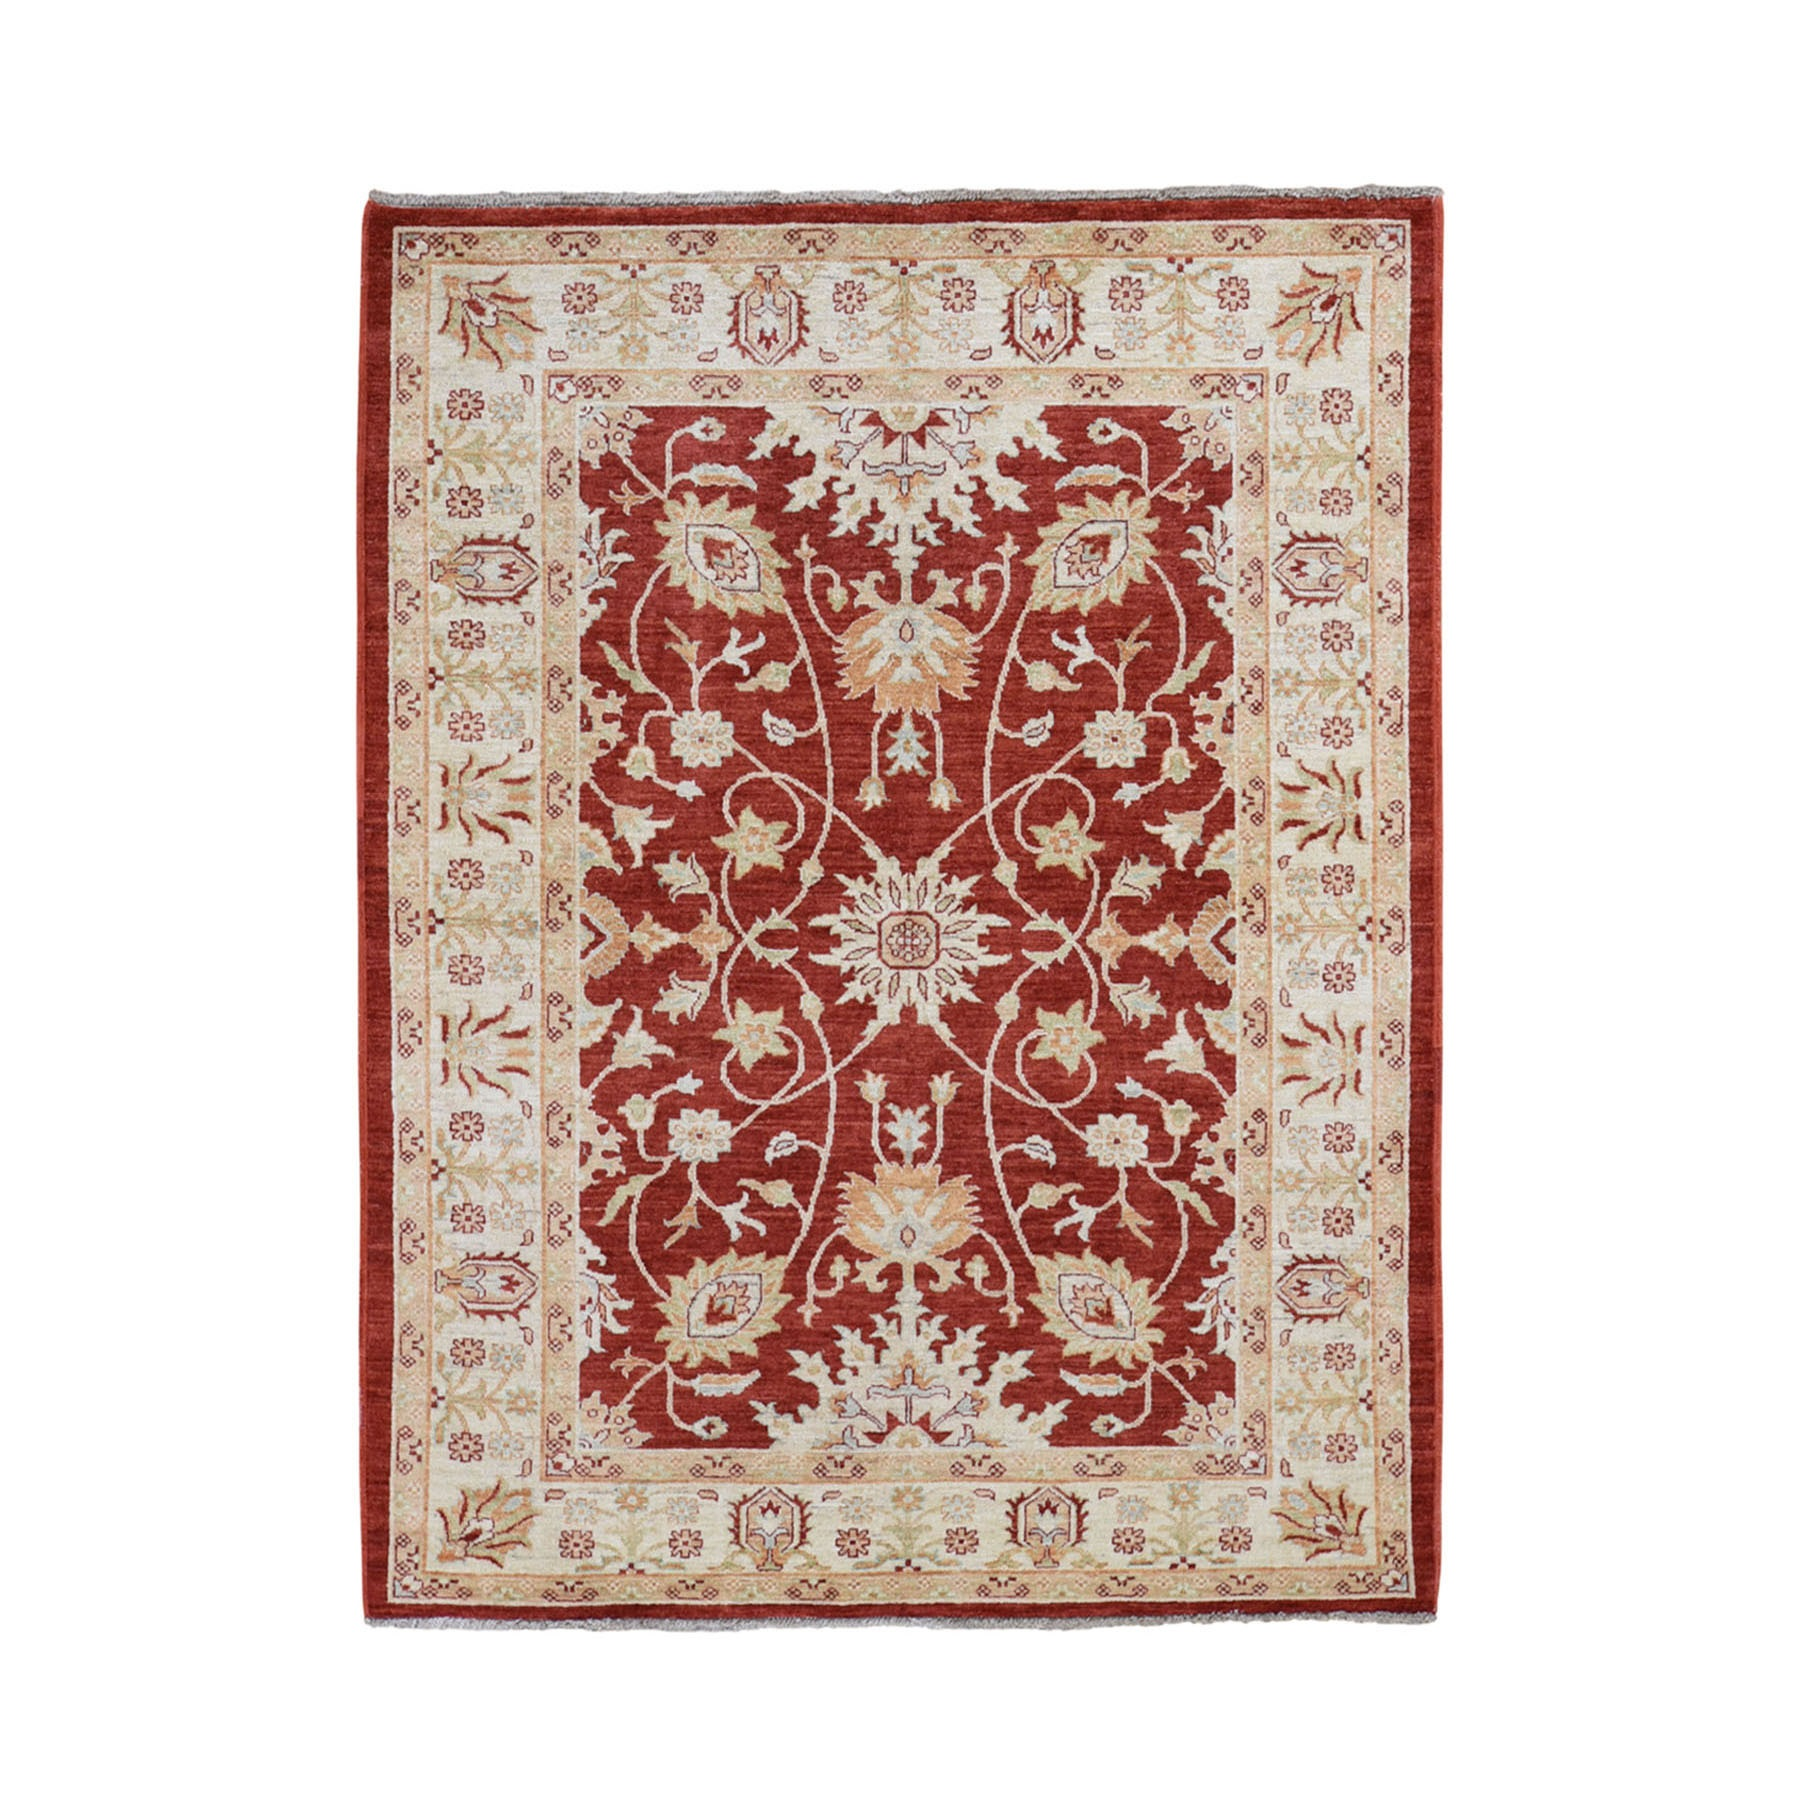 "5'X6'2"" Red Ziegler Mahal Oushak Pure Wool Hand Knotted Oriental Rug moad70ec"